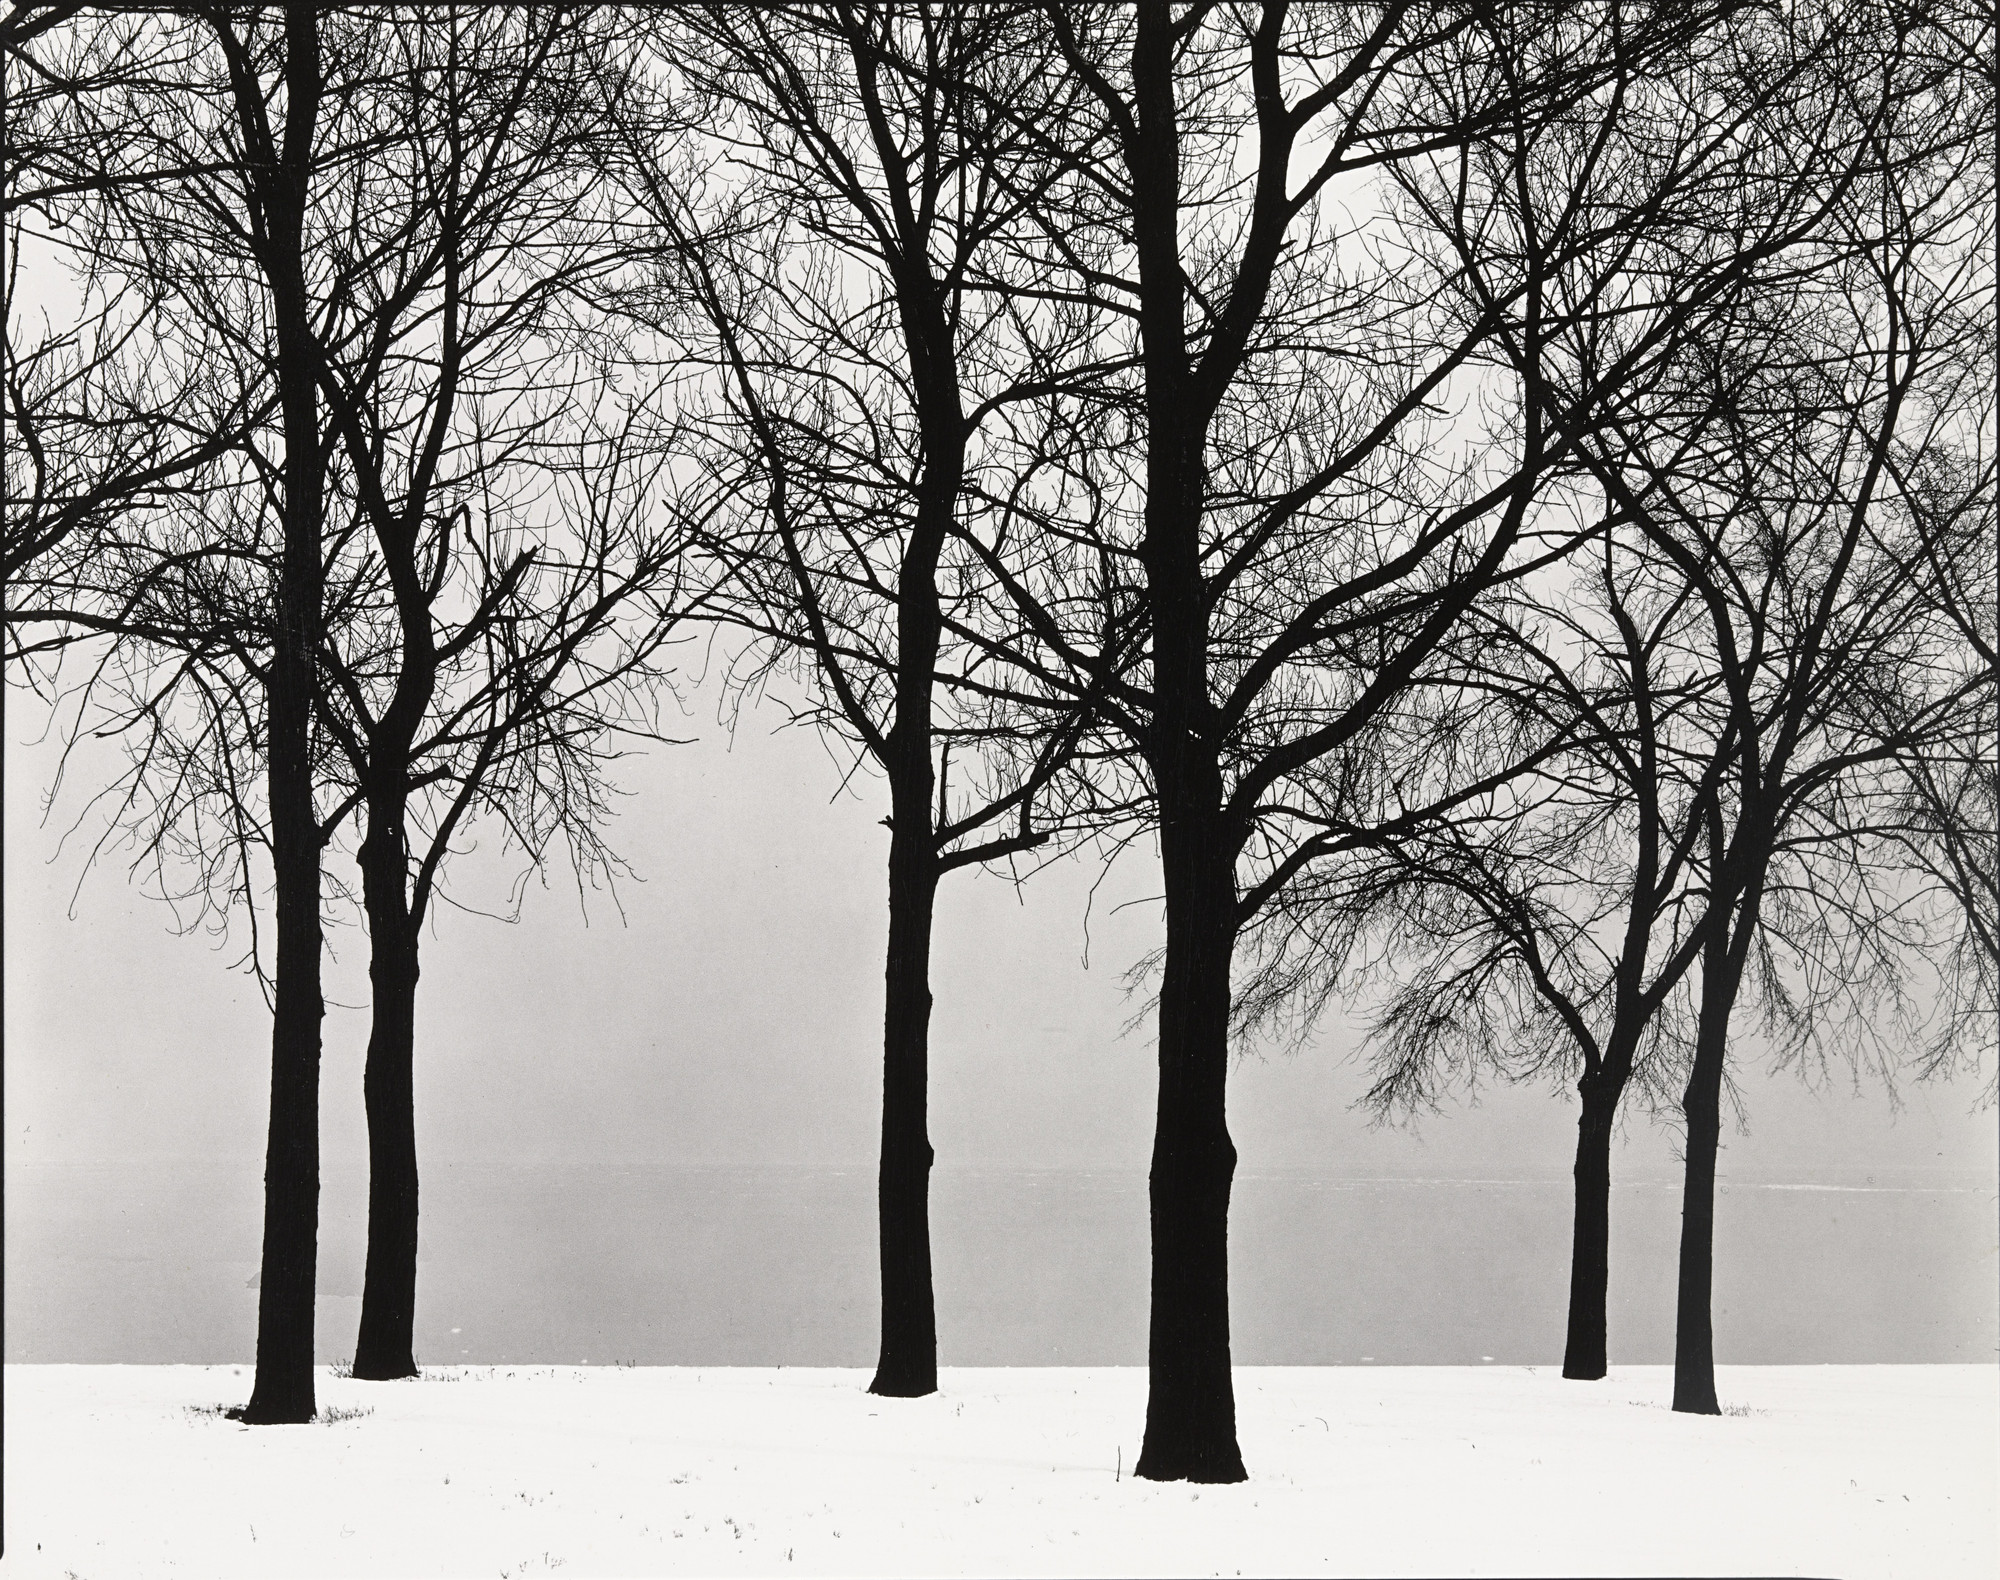 Harry Callahan. Chicago. c. 1950